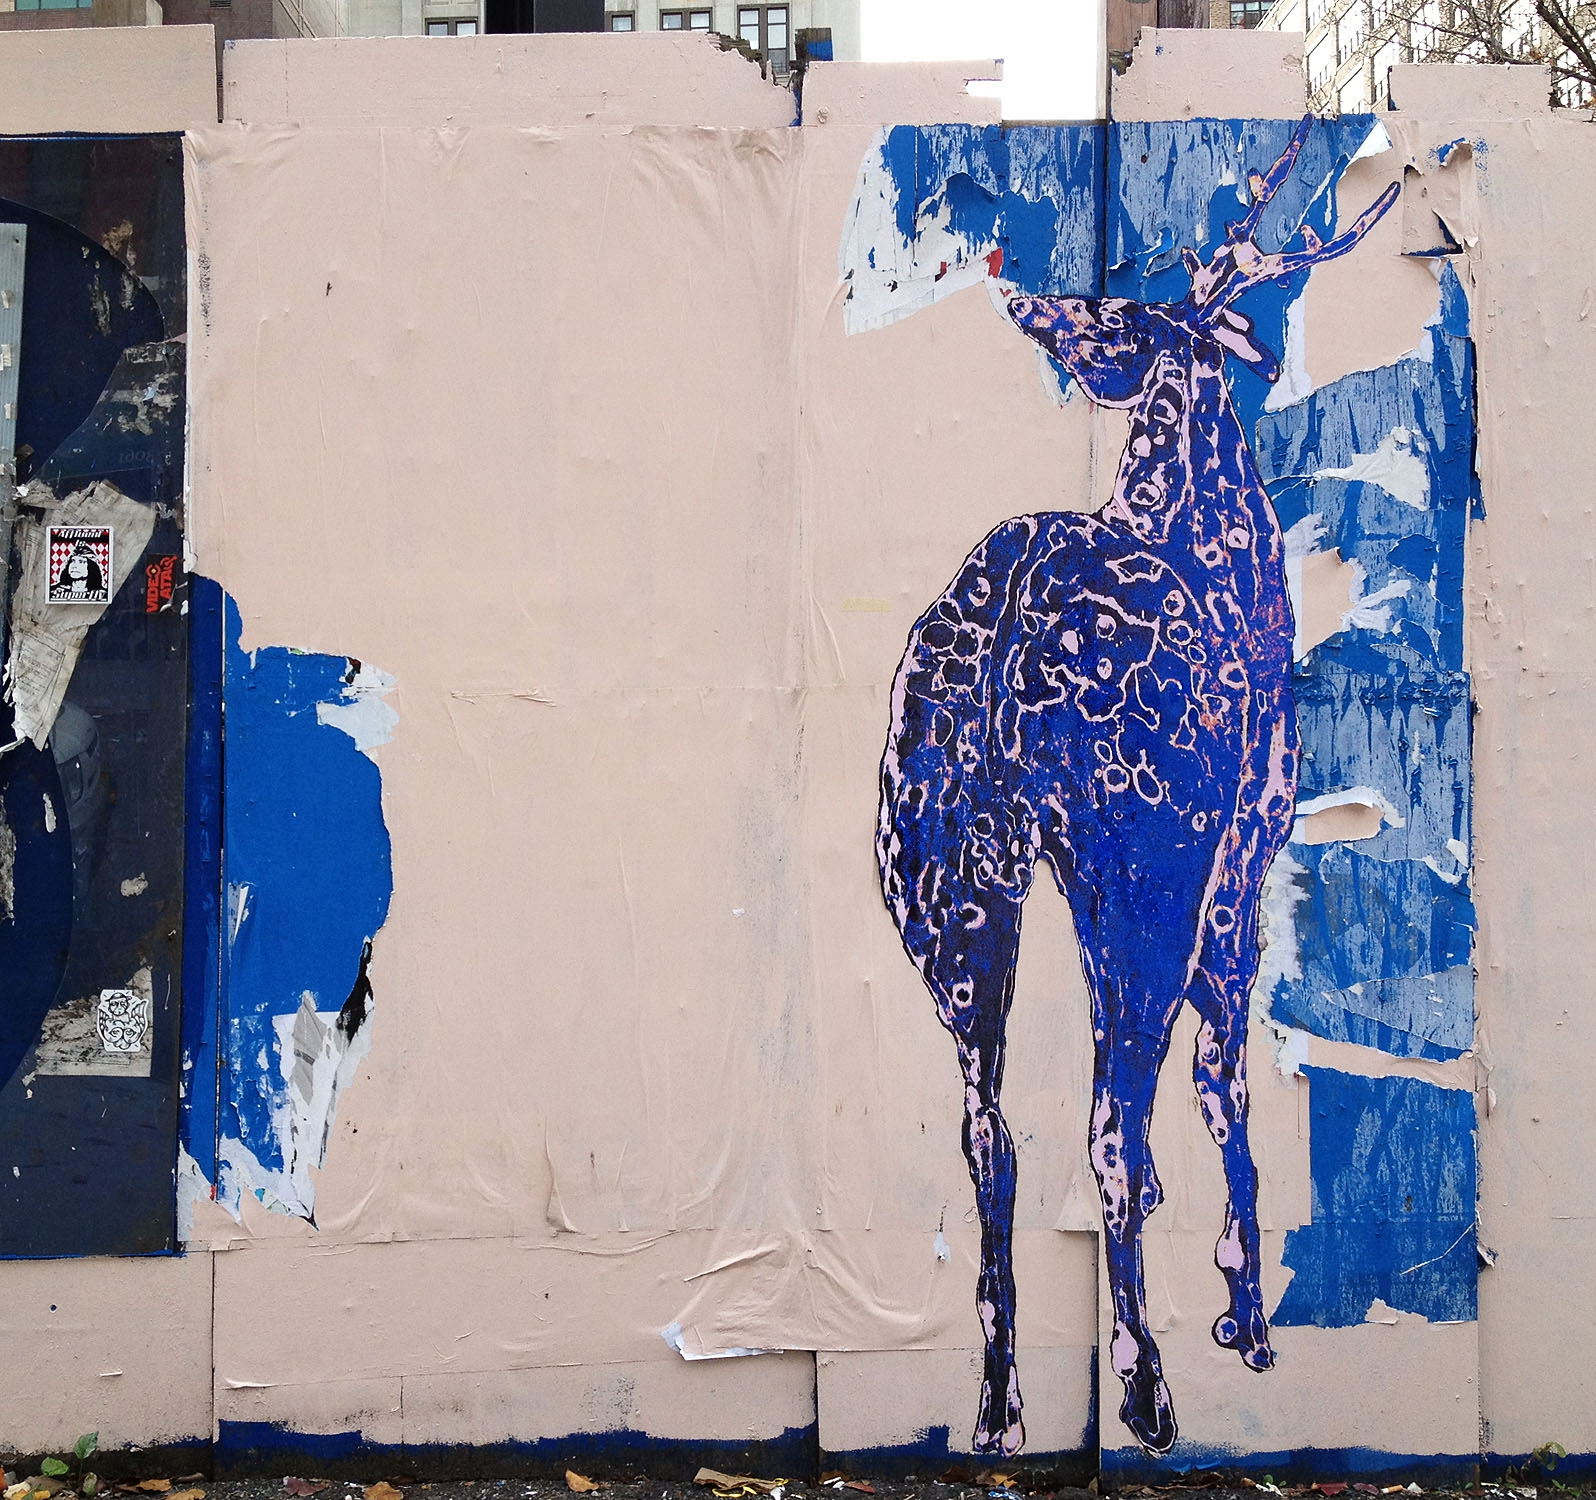 ShinShin-Street-Art-Blue-Deer-Broome-St.jpg